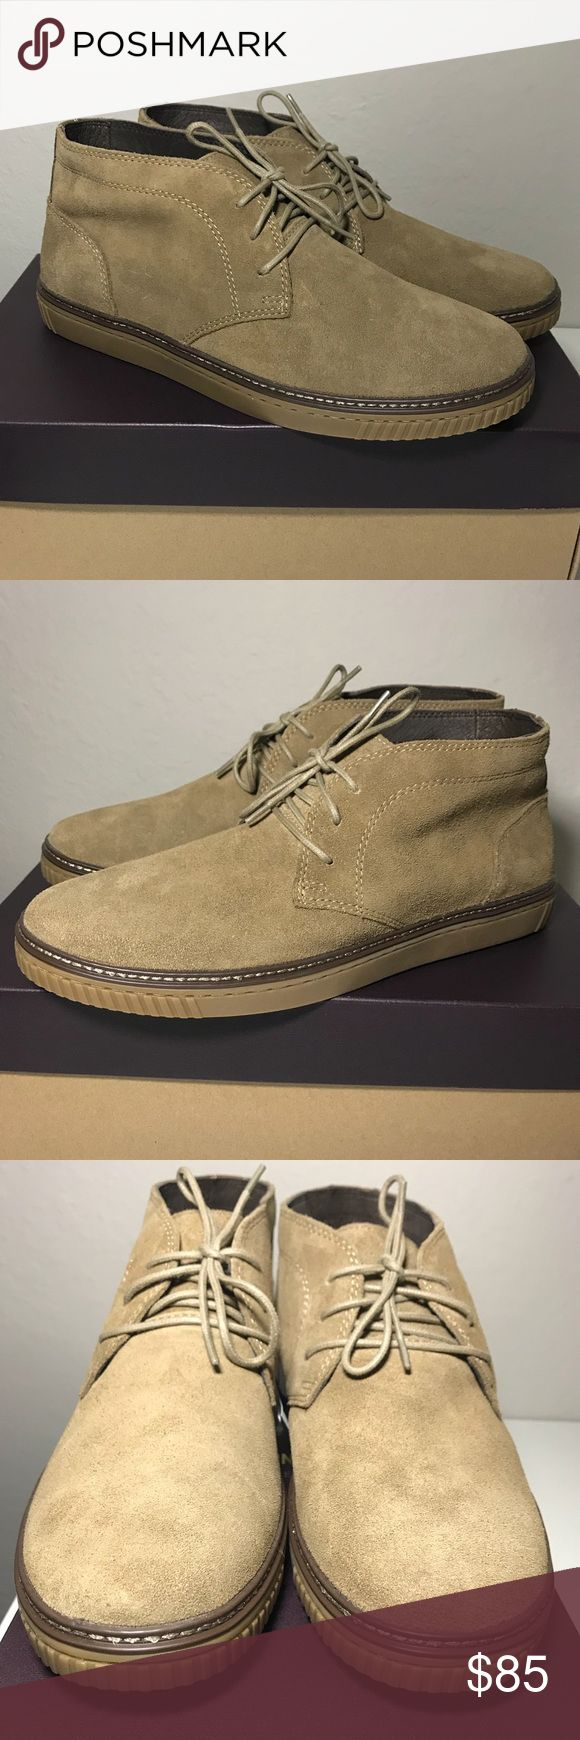 """Johnston & Murphy """"Wallace"""" Suede Chukka Boot Johnston & Murphy """"Wallace"""" Suede Chukka Boot  * Brand New with Box * Size: 10.5 * 100% Authentic   Please ask any questions prior to purchasing. See pictures for more details. Johnston & Murphy Shoes Chukka Boots"""